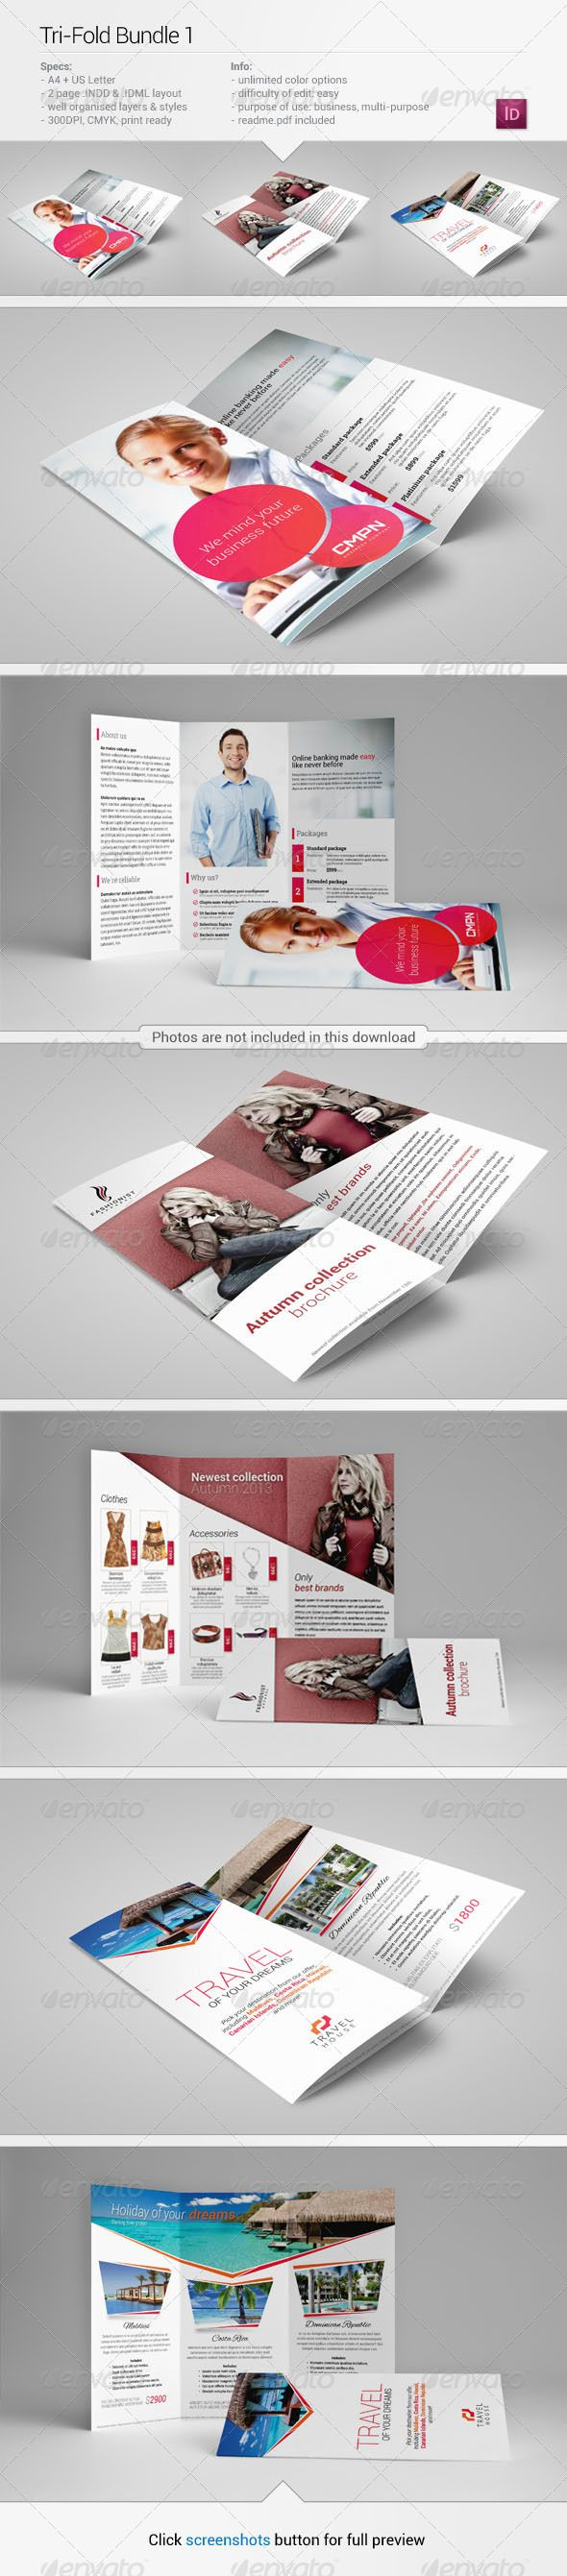 Realistic Graphic DOWNLOAD (.ai, .psd) :: http://jquery.re/pinterest ...